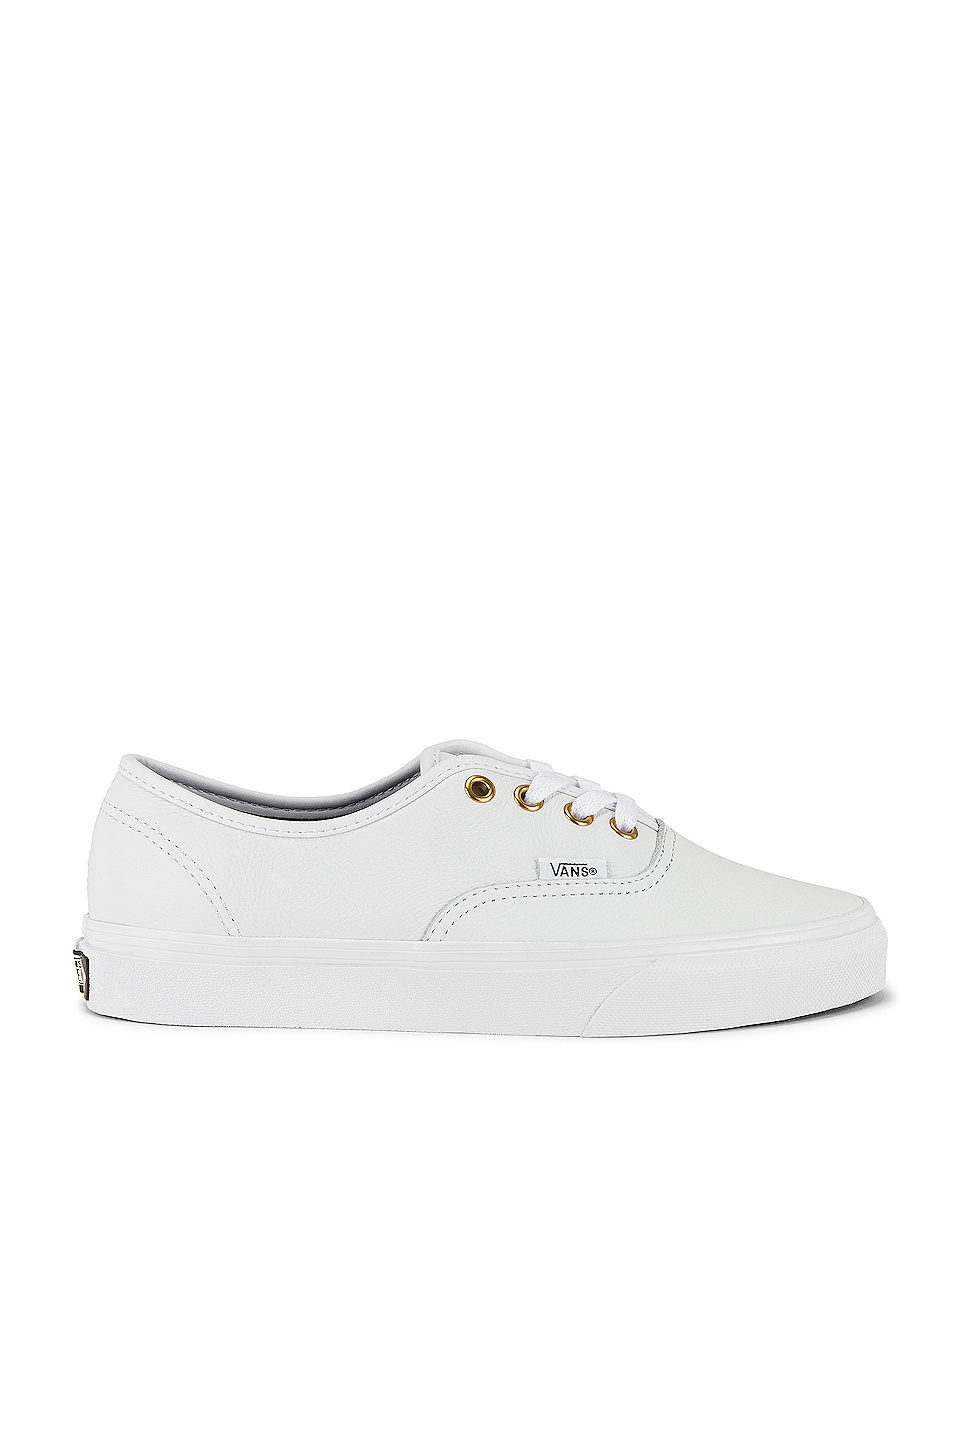 Vans Authentic Leather in True White